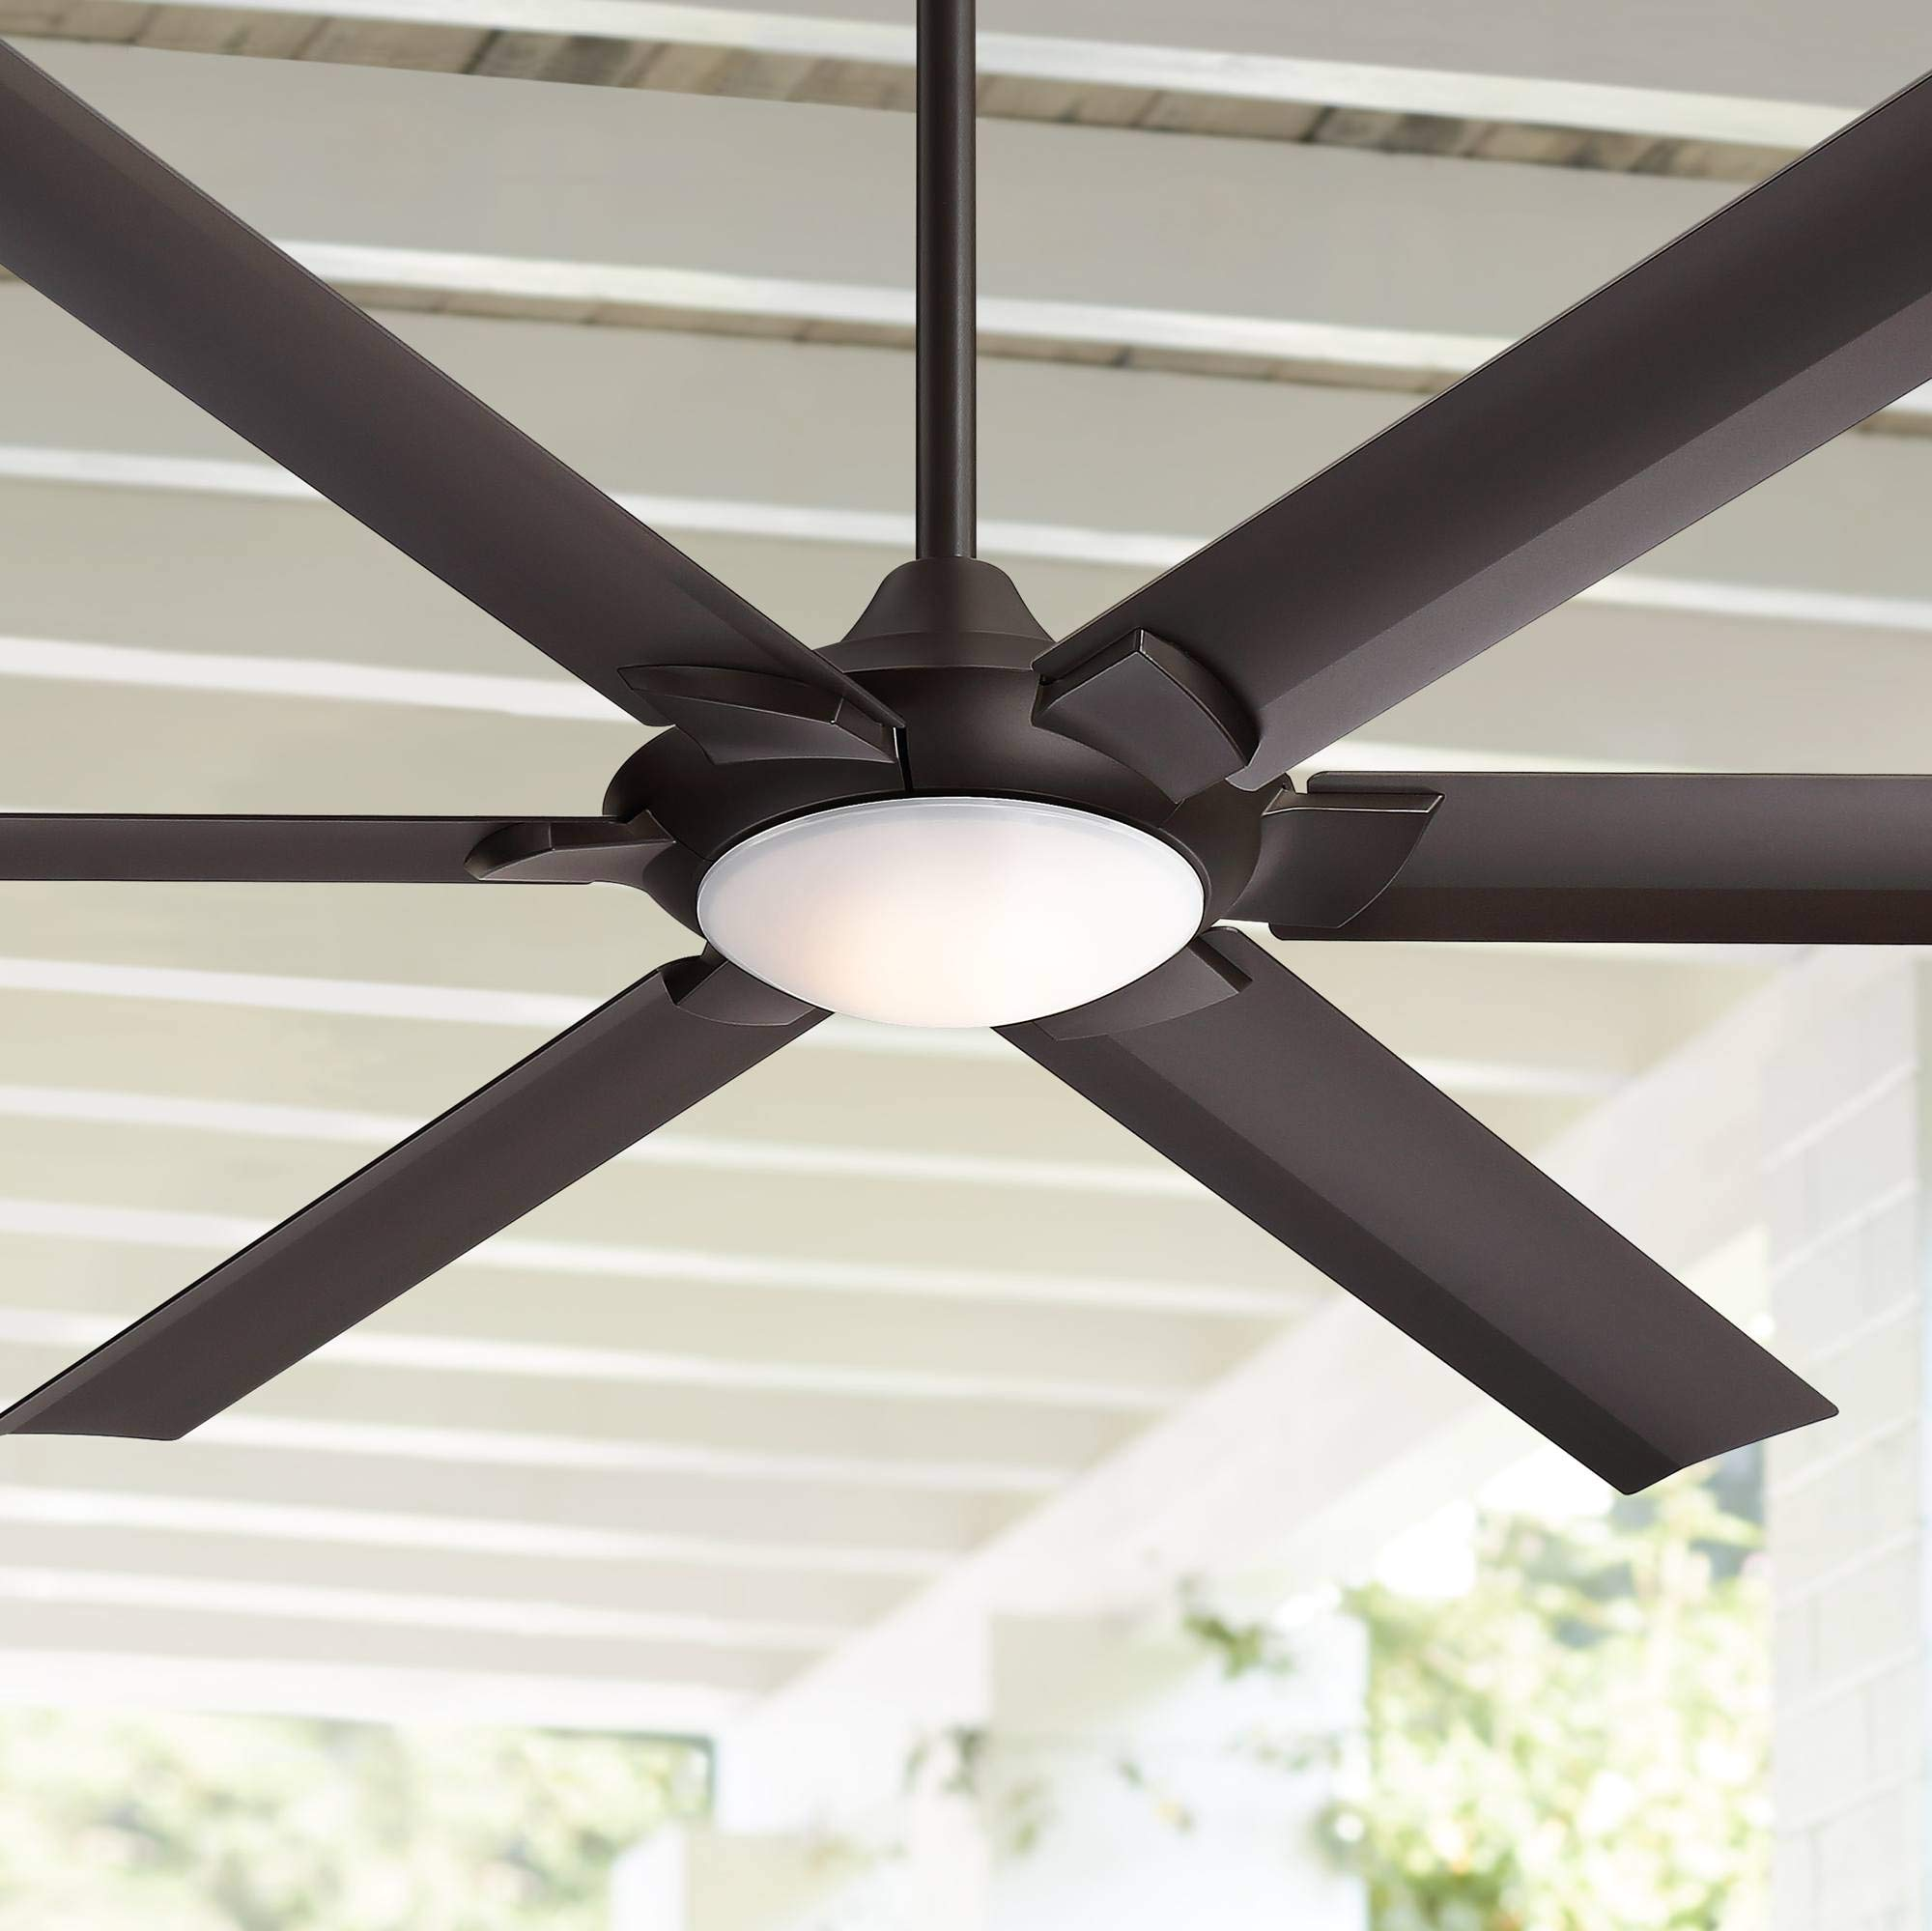 70 Patriarch Industrial Outdoor Ceiling Fan With Light Led Dimmable Remote Control Oil Rubbed Bronze Damp Rated For Patio Porch Casa Vieja Buy Online In India At Desertcart In Productid 171983551